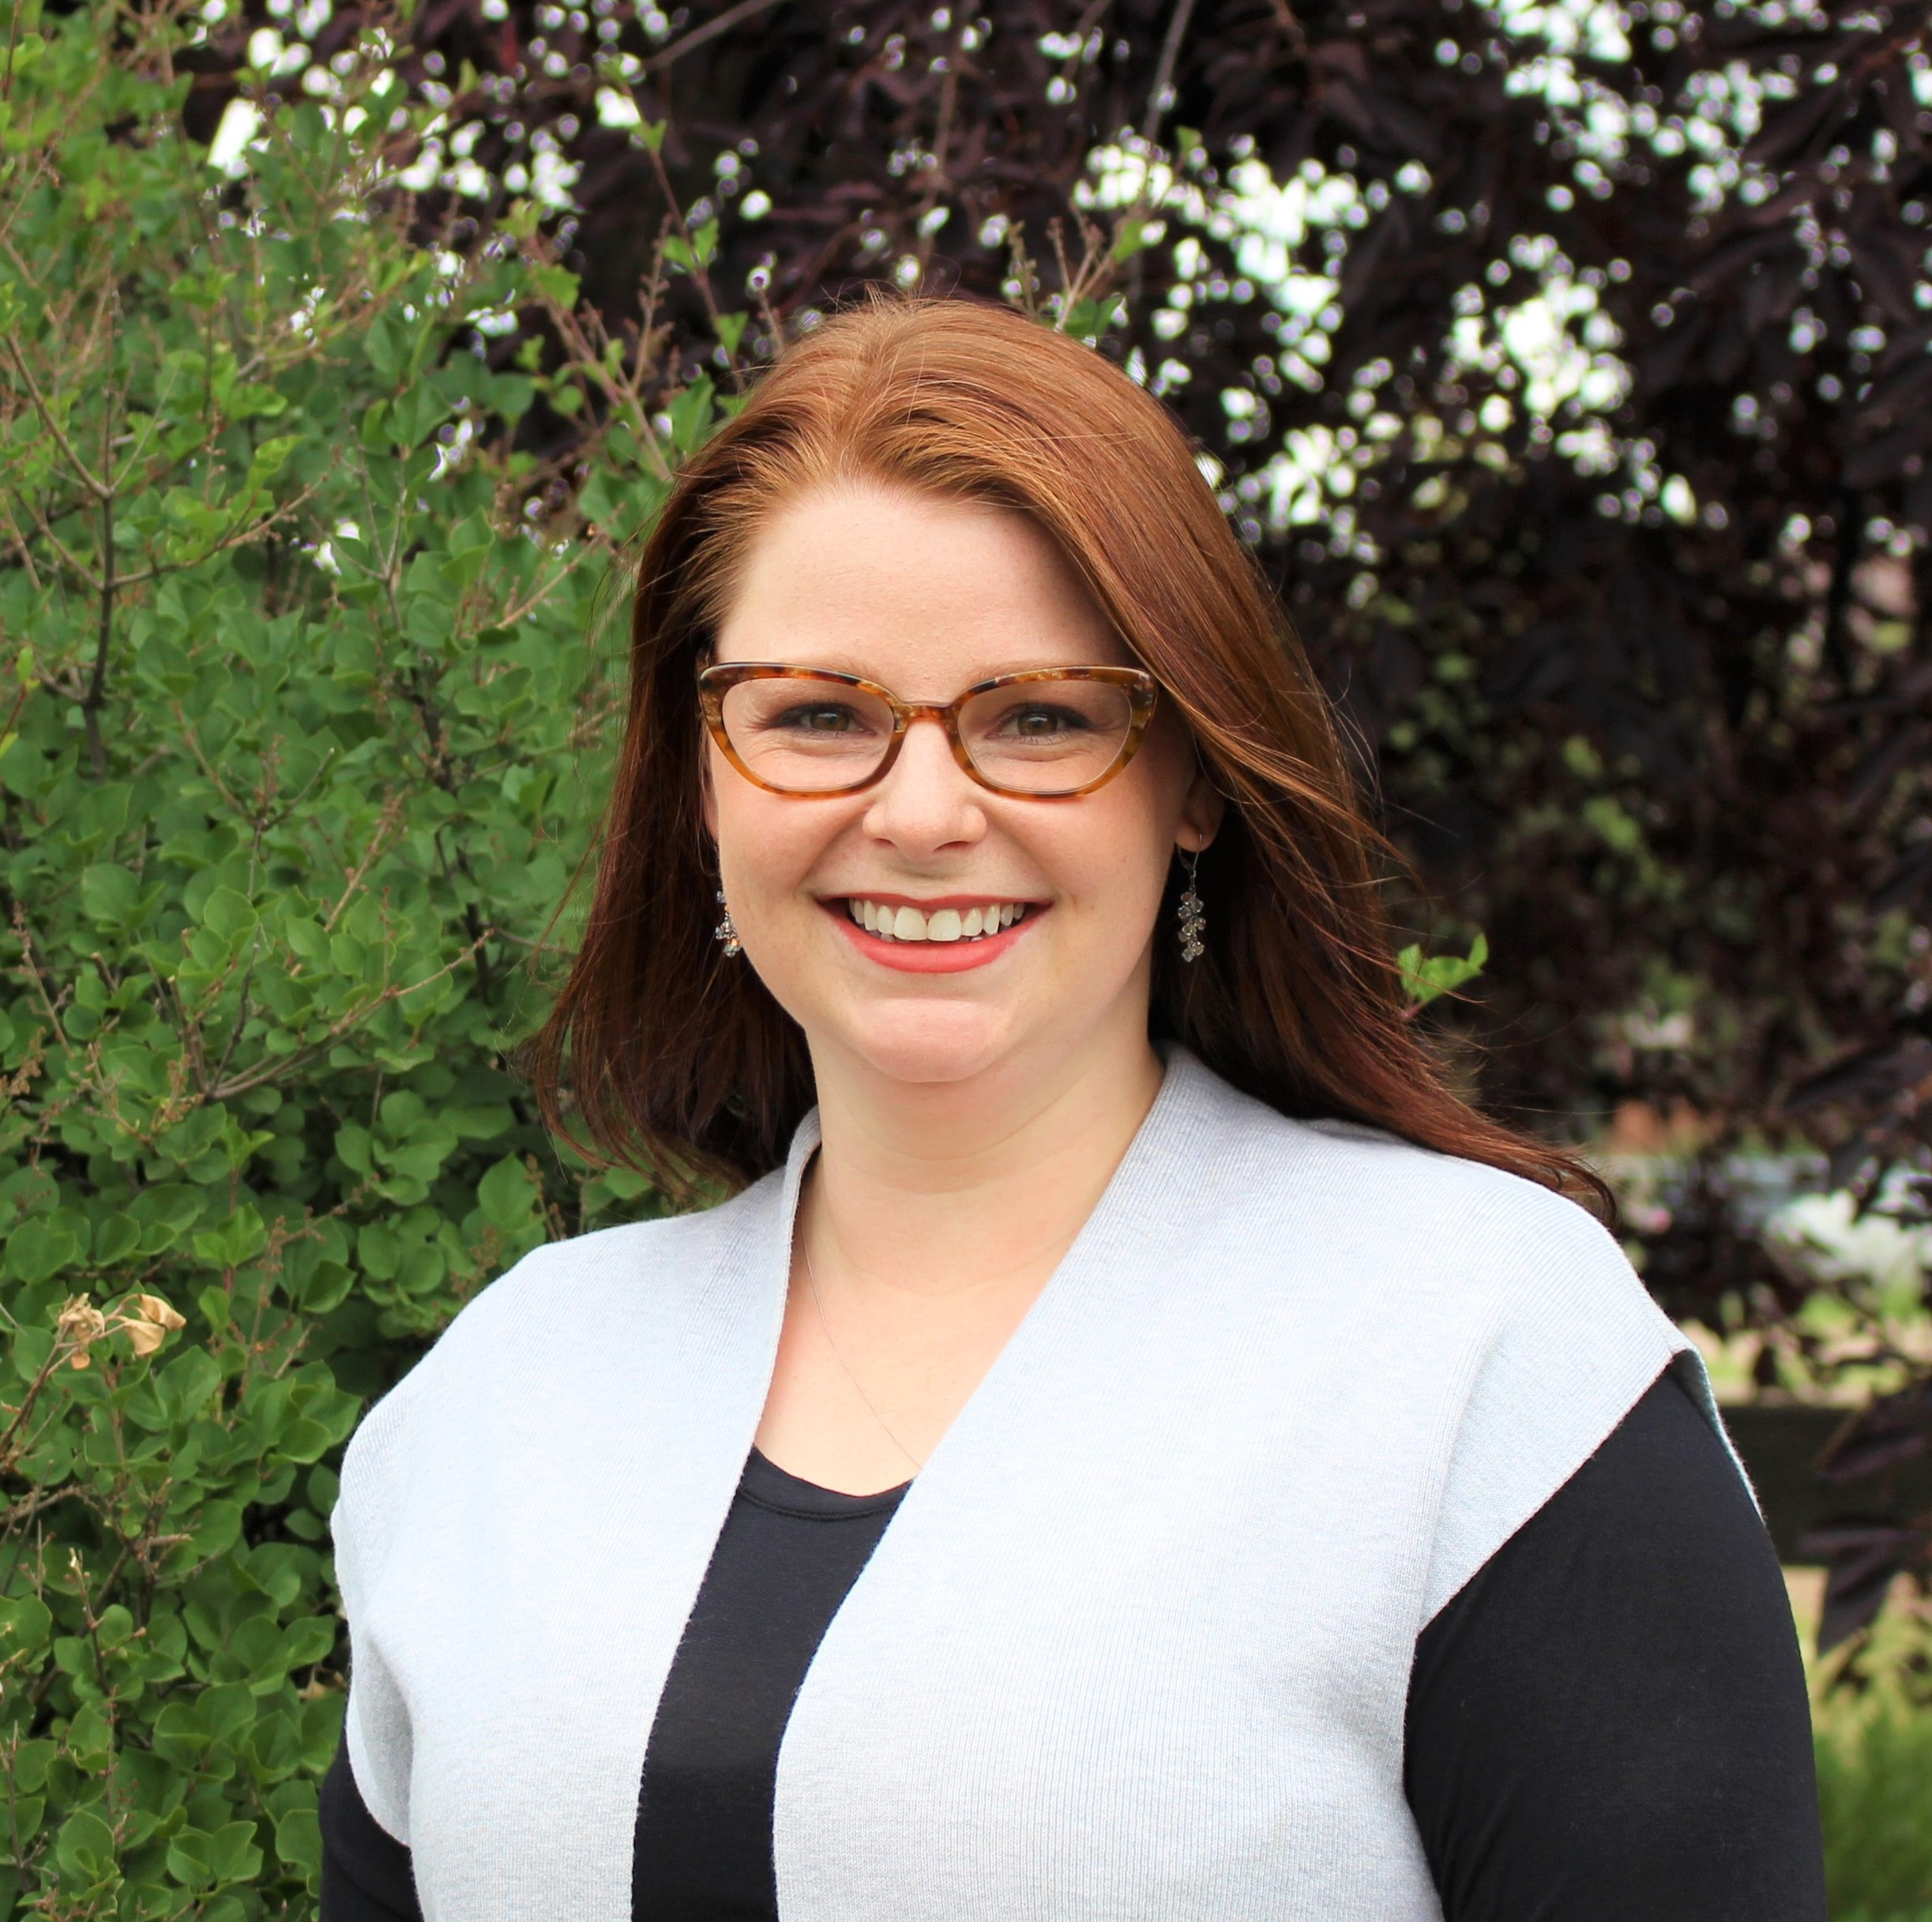 Katherine Moore Registered Provisional Psychologist  https://www.firefly counselling.ca/katherine-moore/  #201 8711 50 AVE Edmonton, AB T6E 5H4  klmoore855@gmail.com